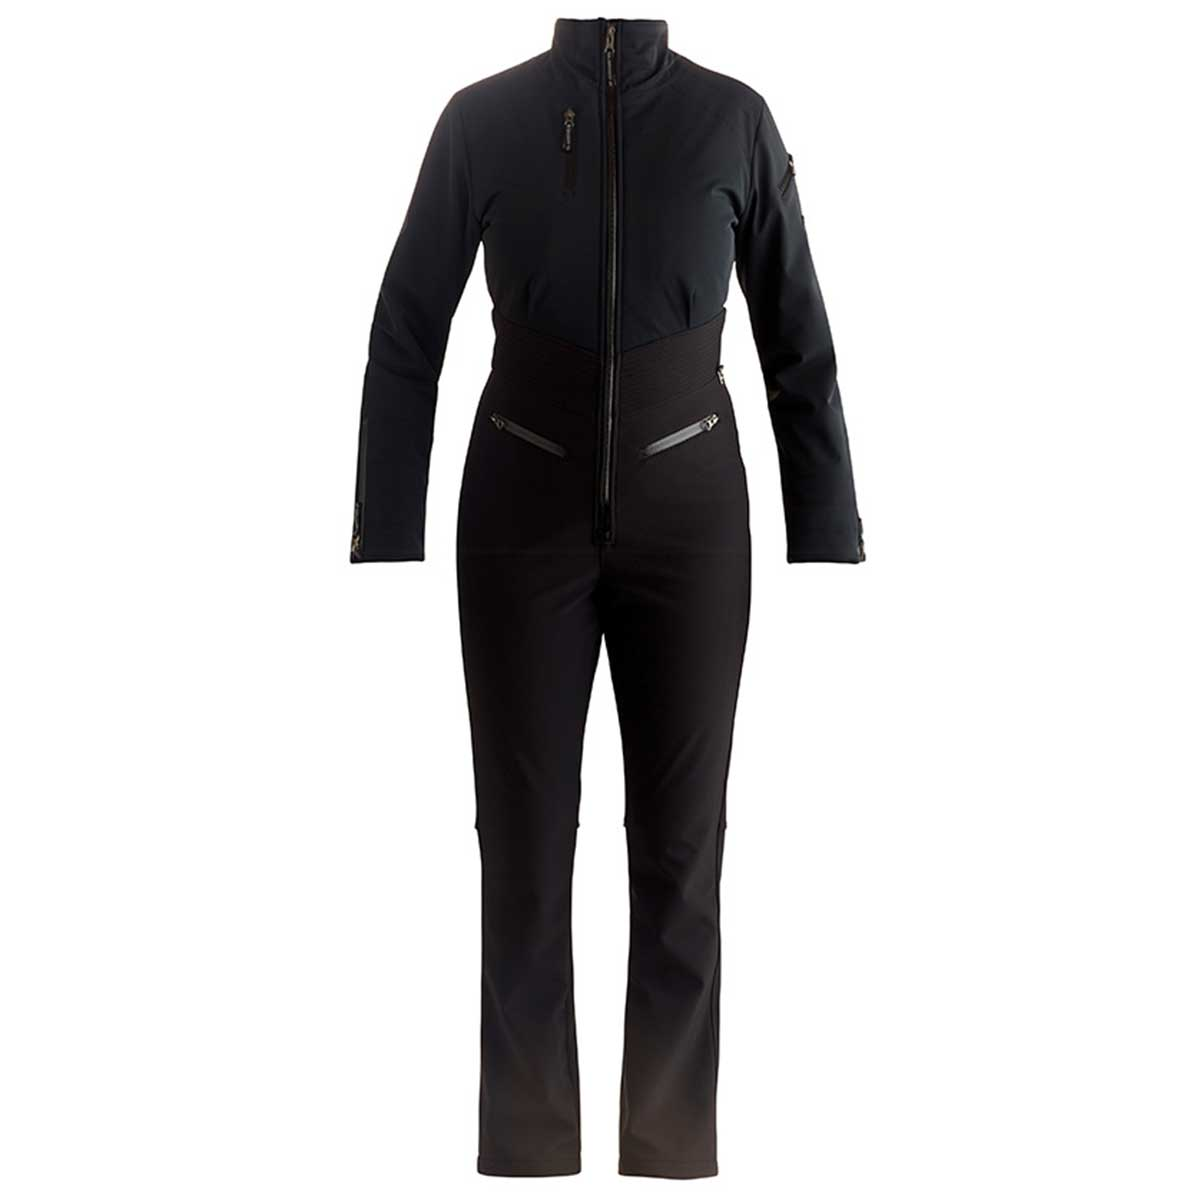 NILS Kora Suit in Black and Black